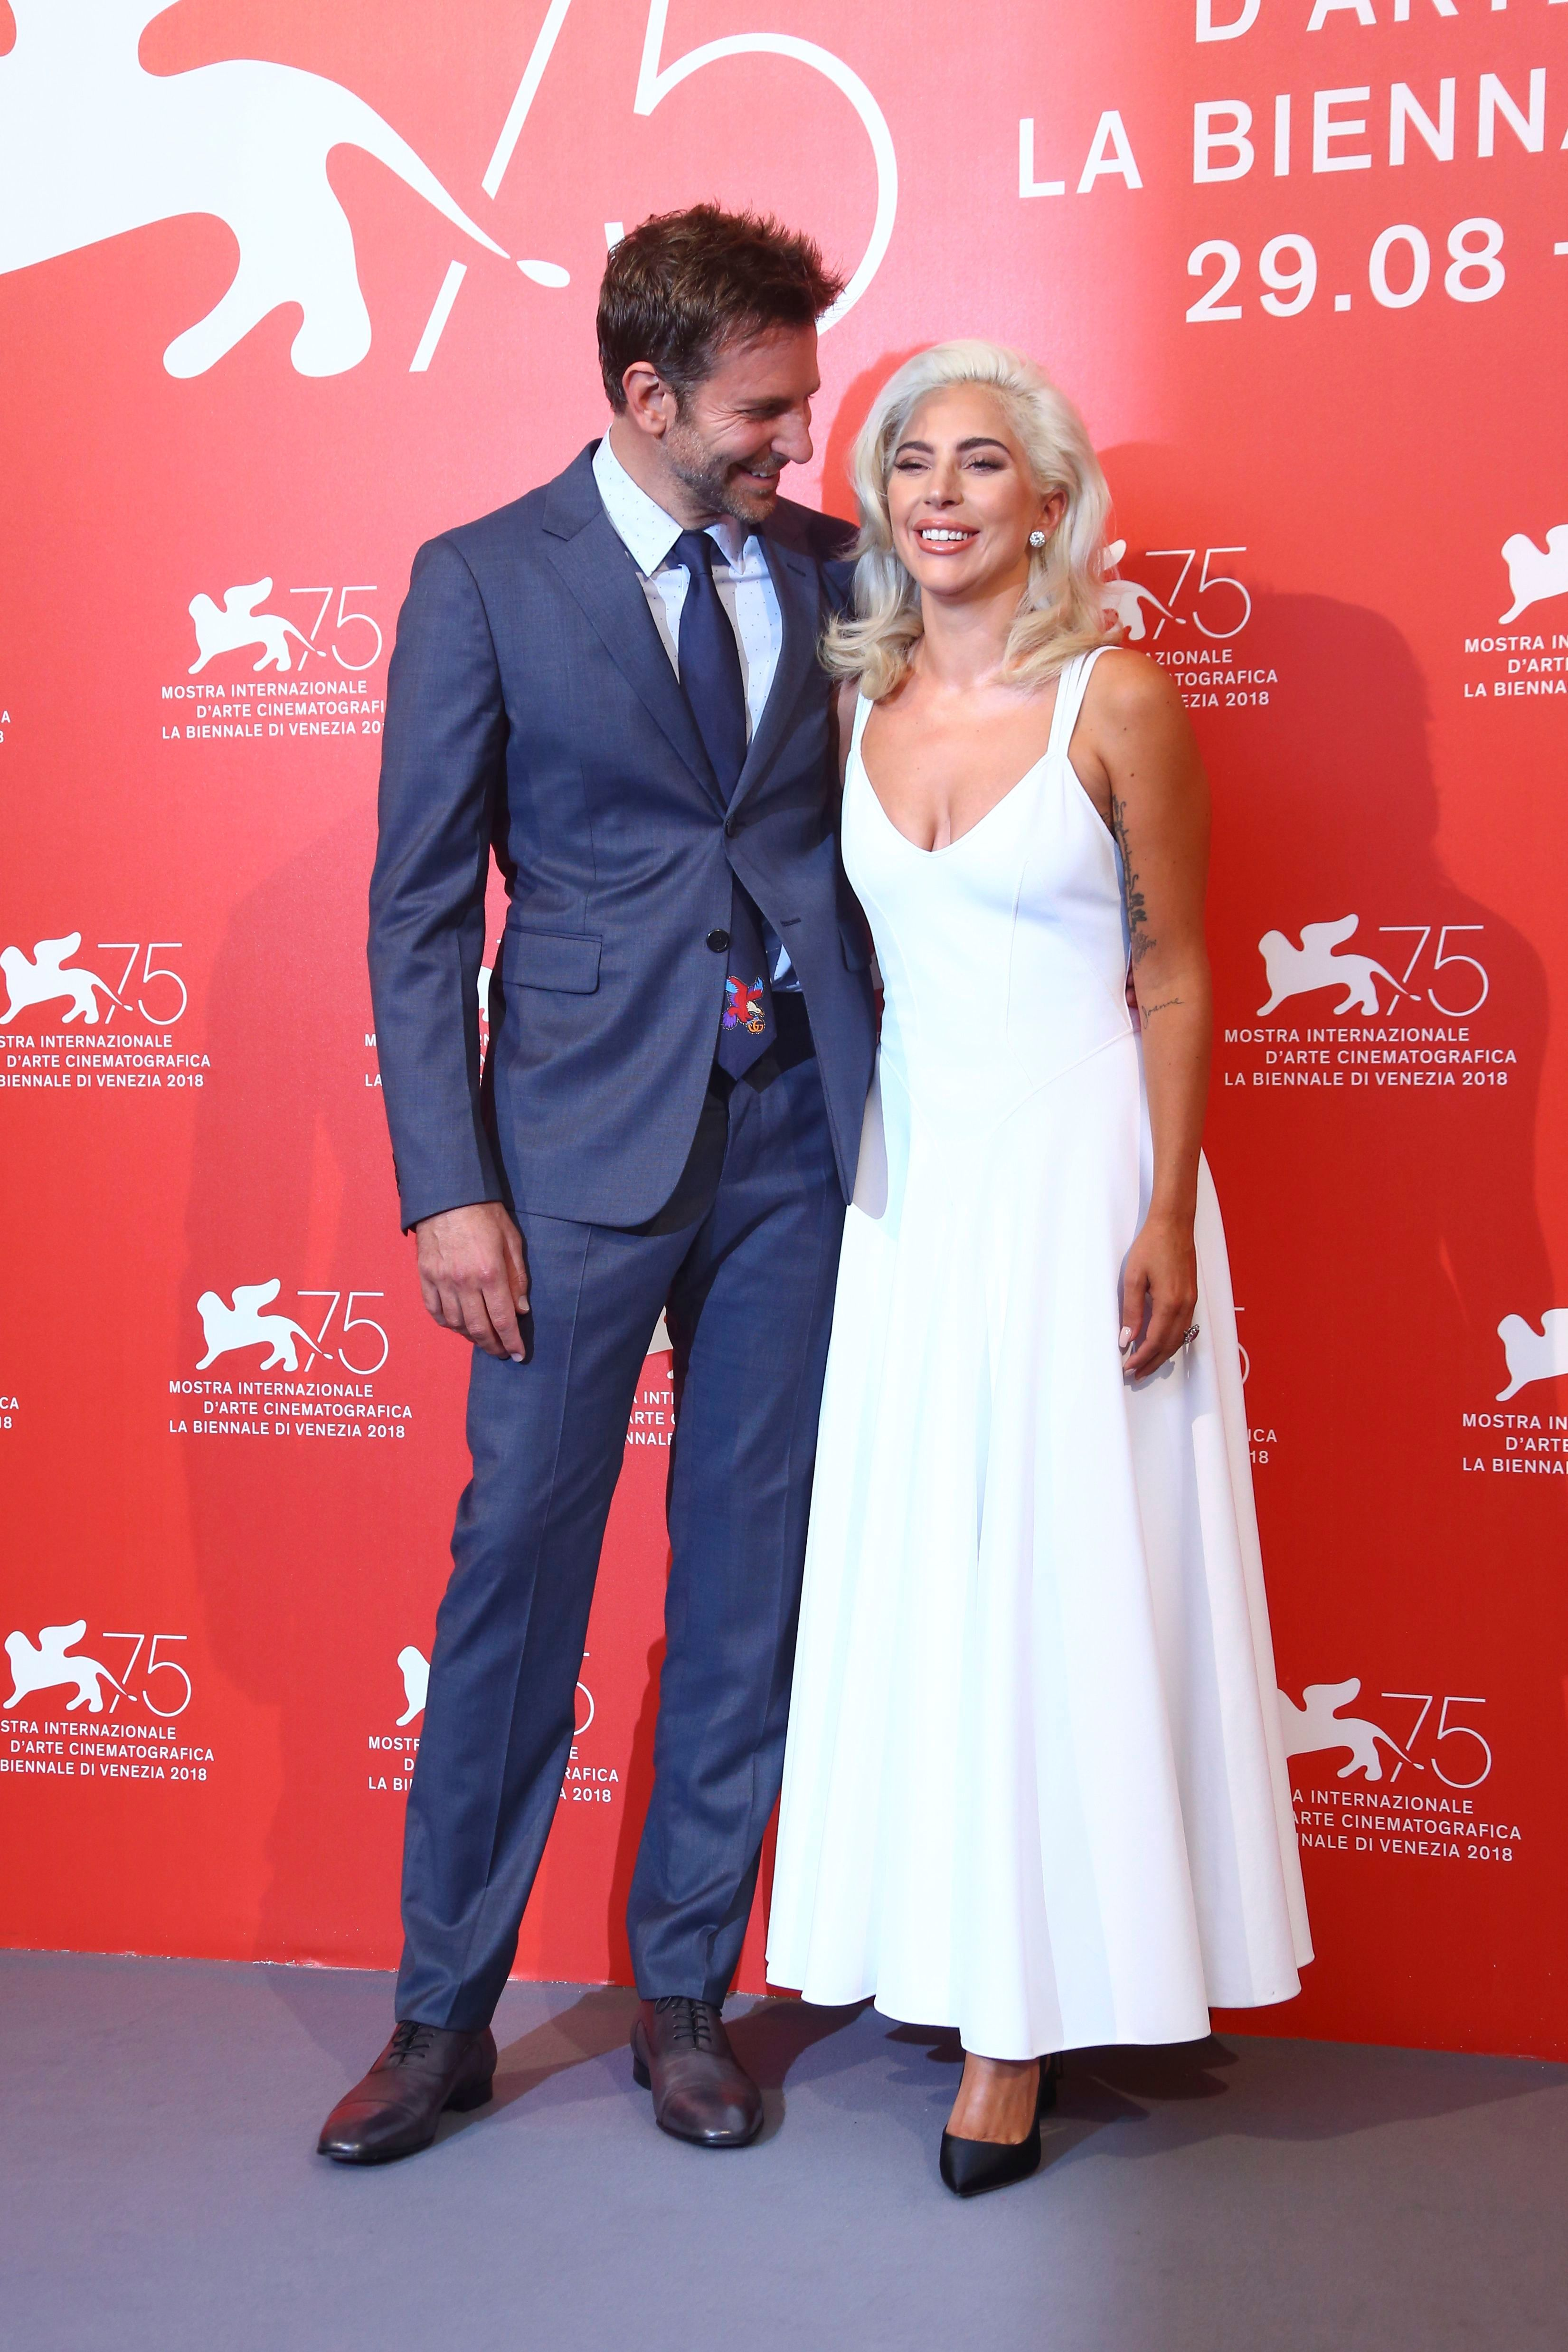 Bradley Cooper, Lady Gaga. Bradley Cooper and Lady Gaga poses for photographers at the photo call for the film 'A Star Is Born' at the 75th edition of the Venice Film Festival in Venice, ItalyFilm Festival 2018 A Star Is Born Photo Call, Venice, Italy - 31 Aug 2018